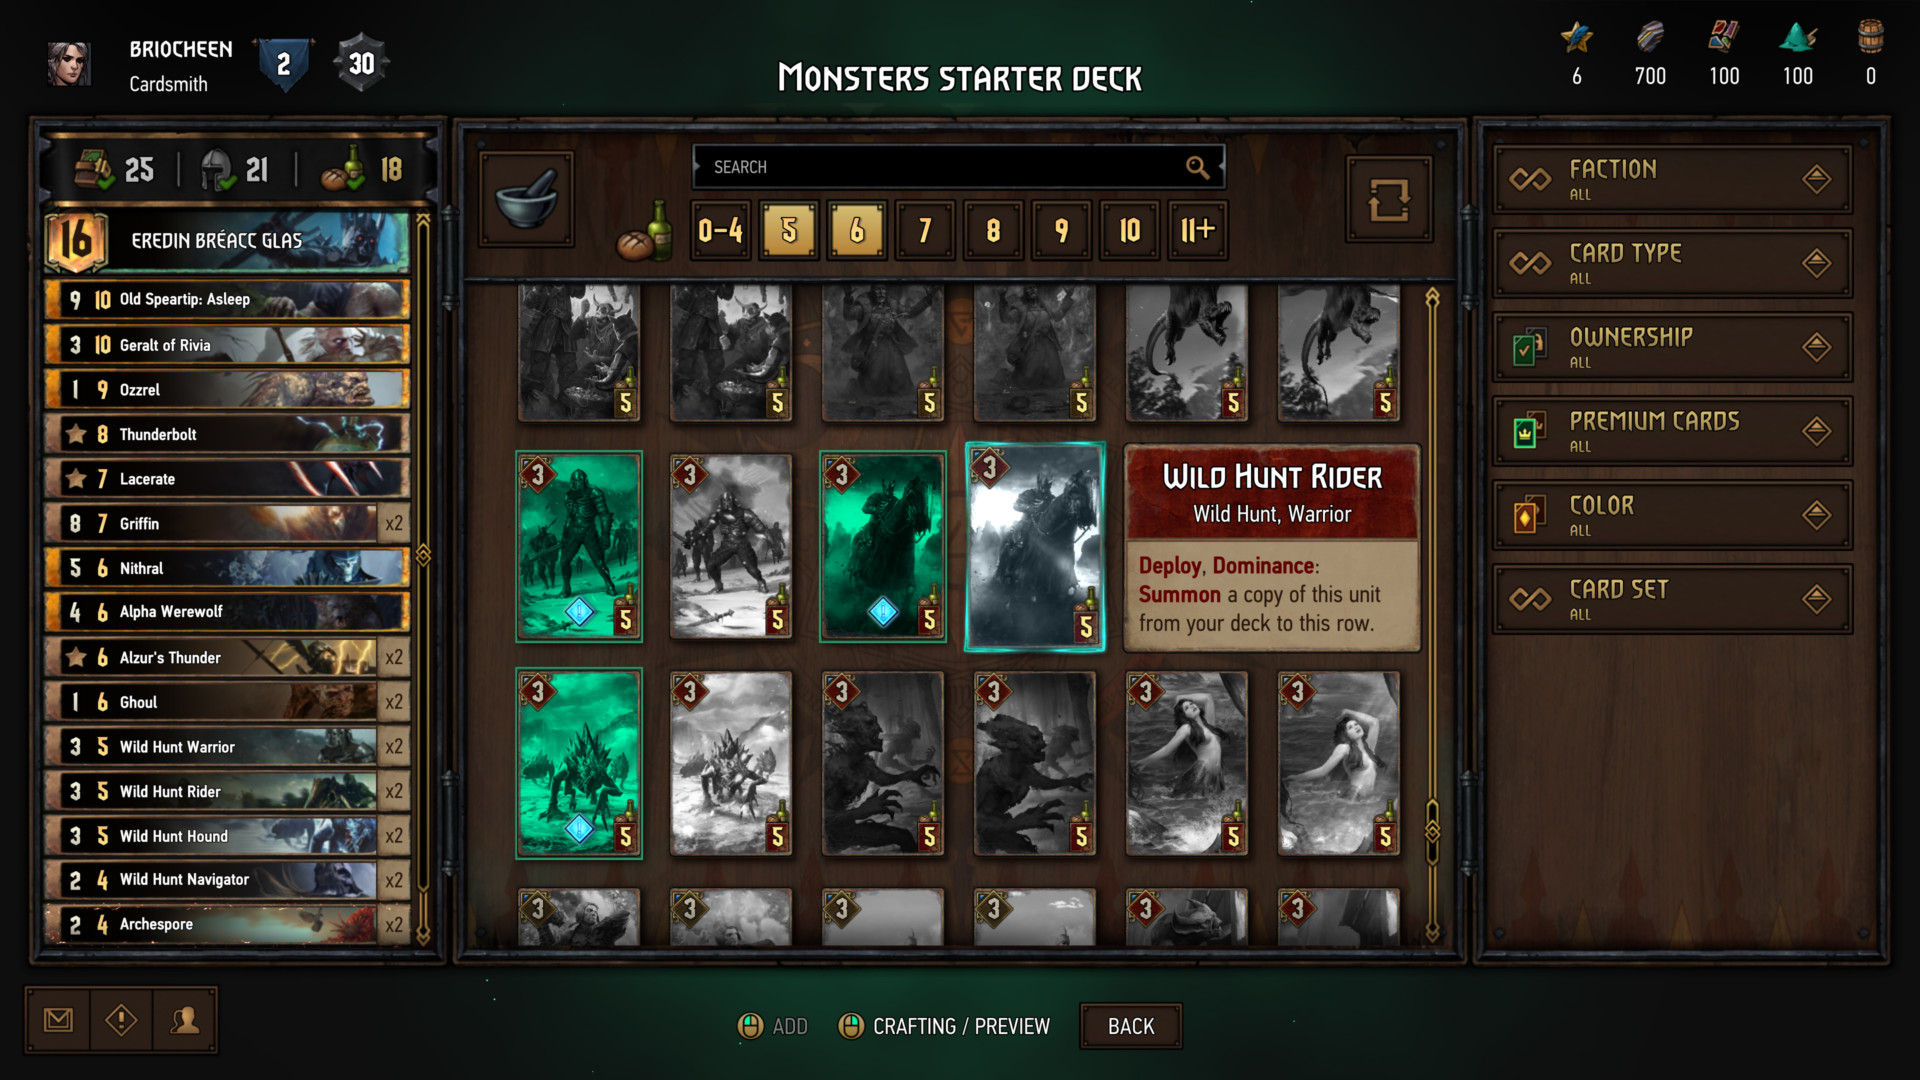 Monsters starter deck screenshot of Gwent: The Witcher Card Game video game interface.